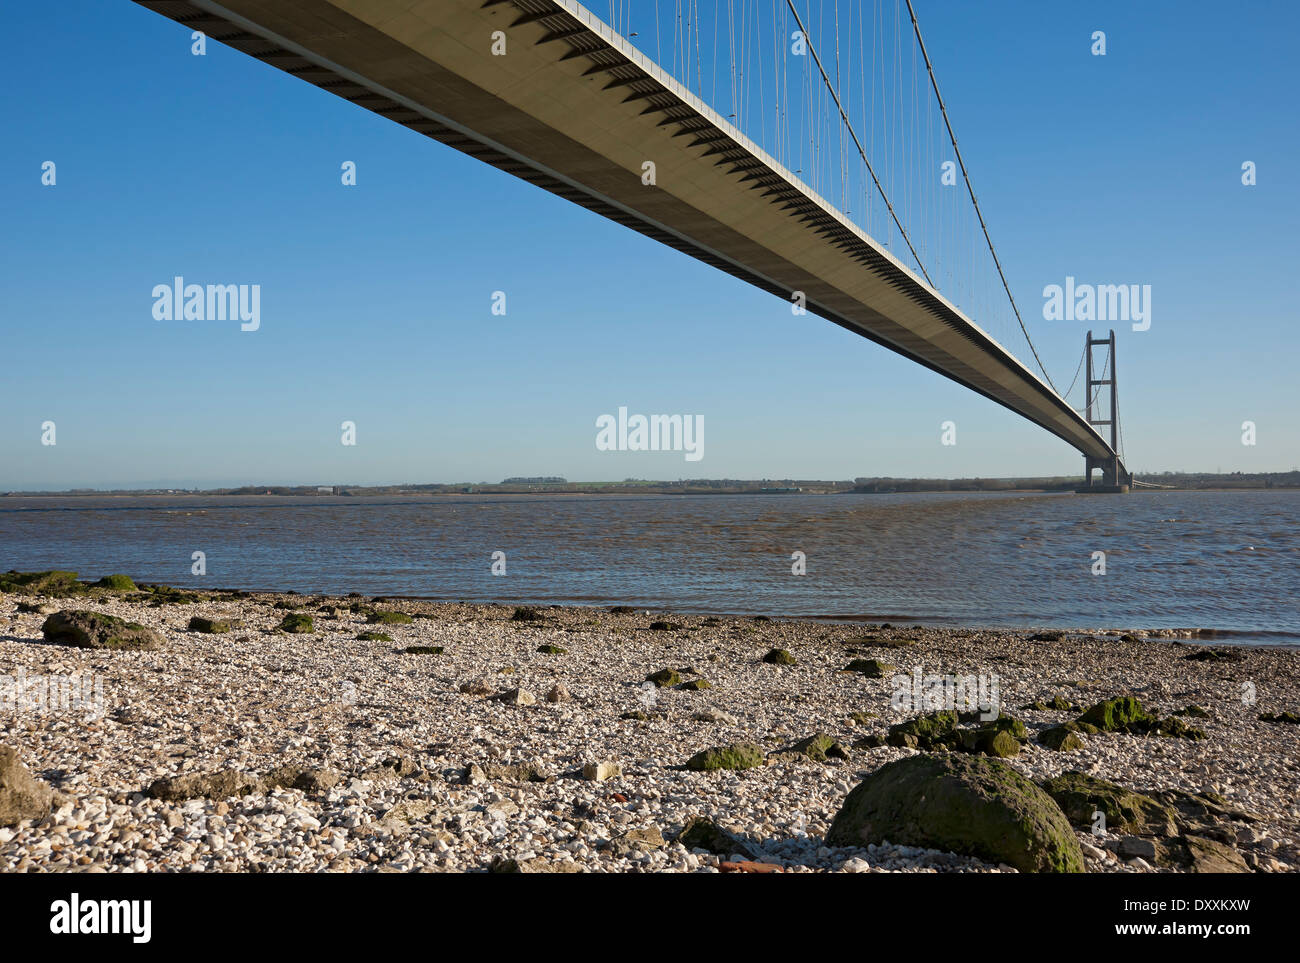 Humber Bridge single span suspension bridge connecting East Yorkshire and North Lincolnshire near Hull East Yorkshire Stock Photo